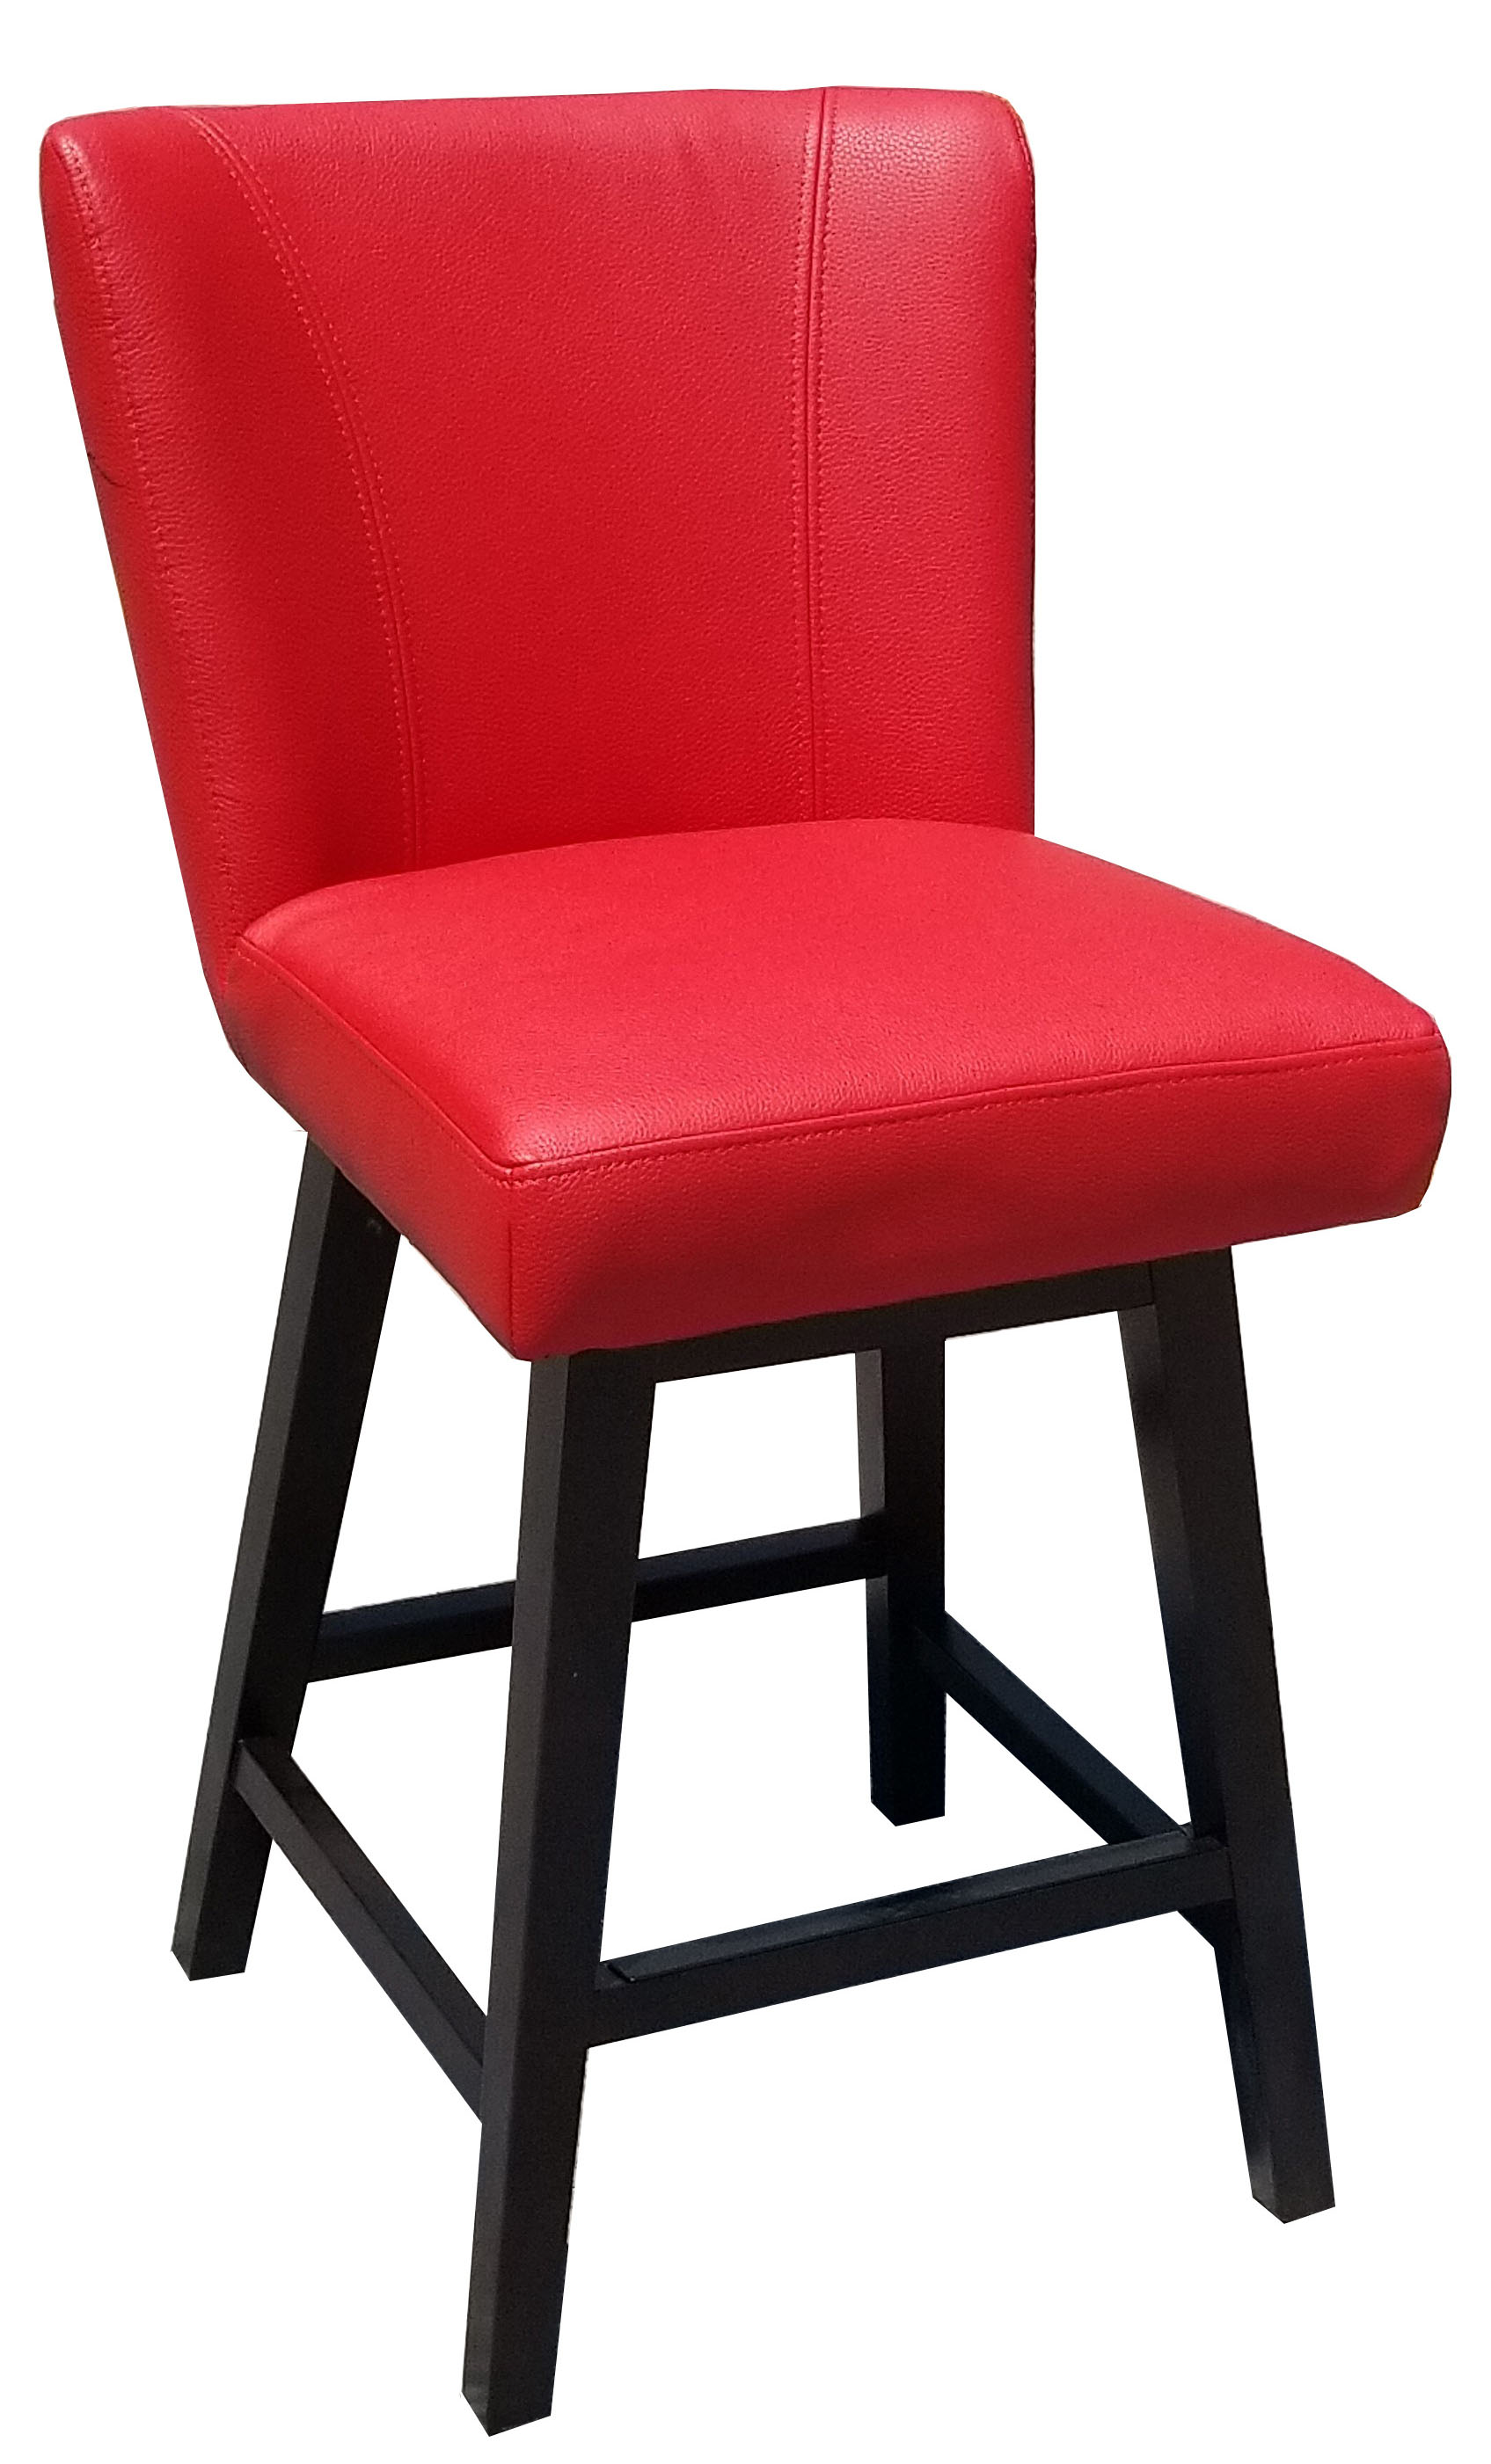 Pleasant Lipstick Red Leather Swivel Counter Stool Unemploymentrelief Wooden Chair Designs For Living Room Unemploymentrelieforg